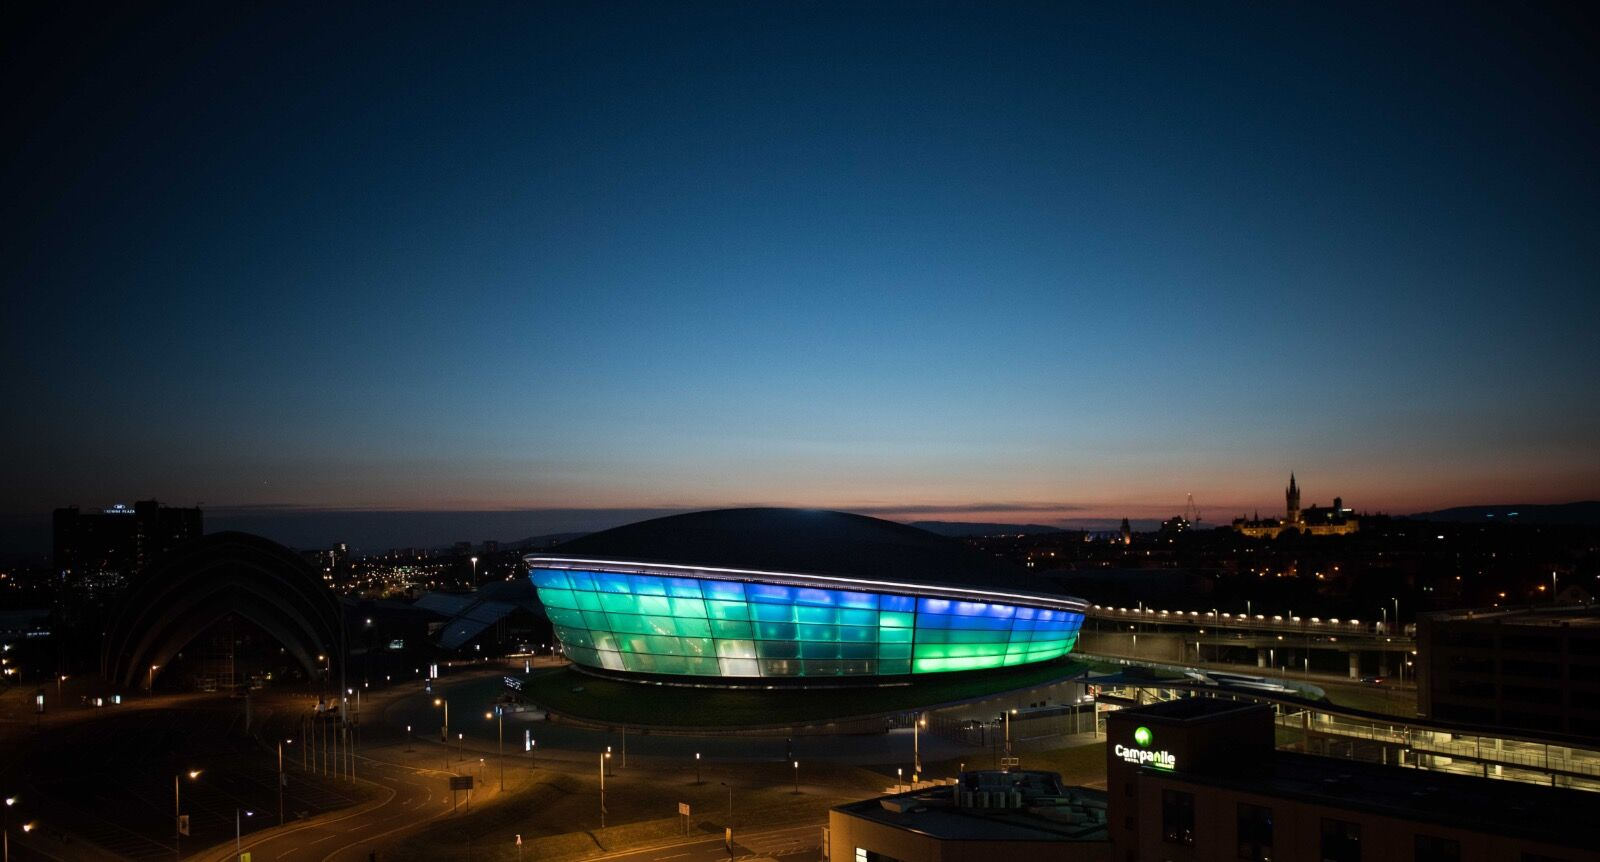 SSE HYDRO Arena at dusk